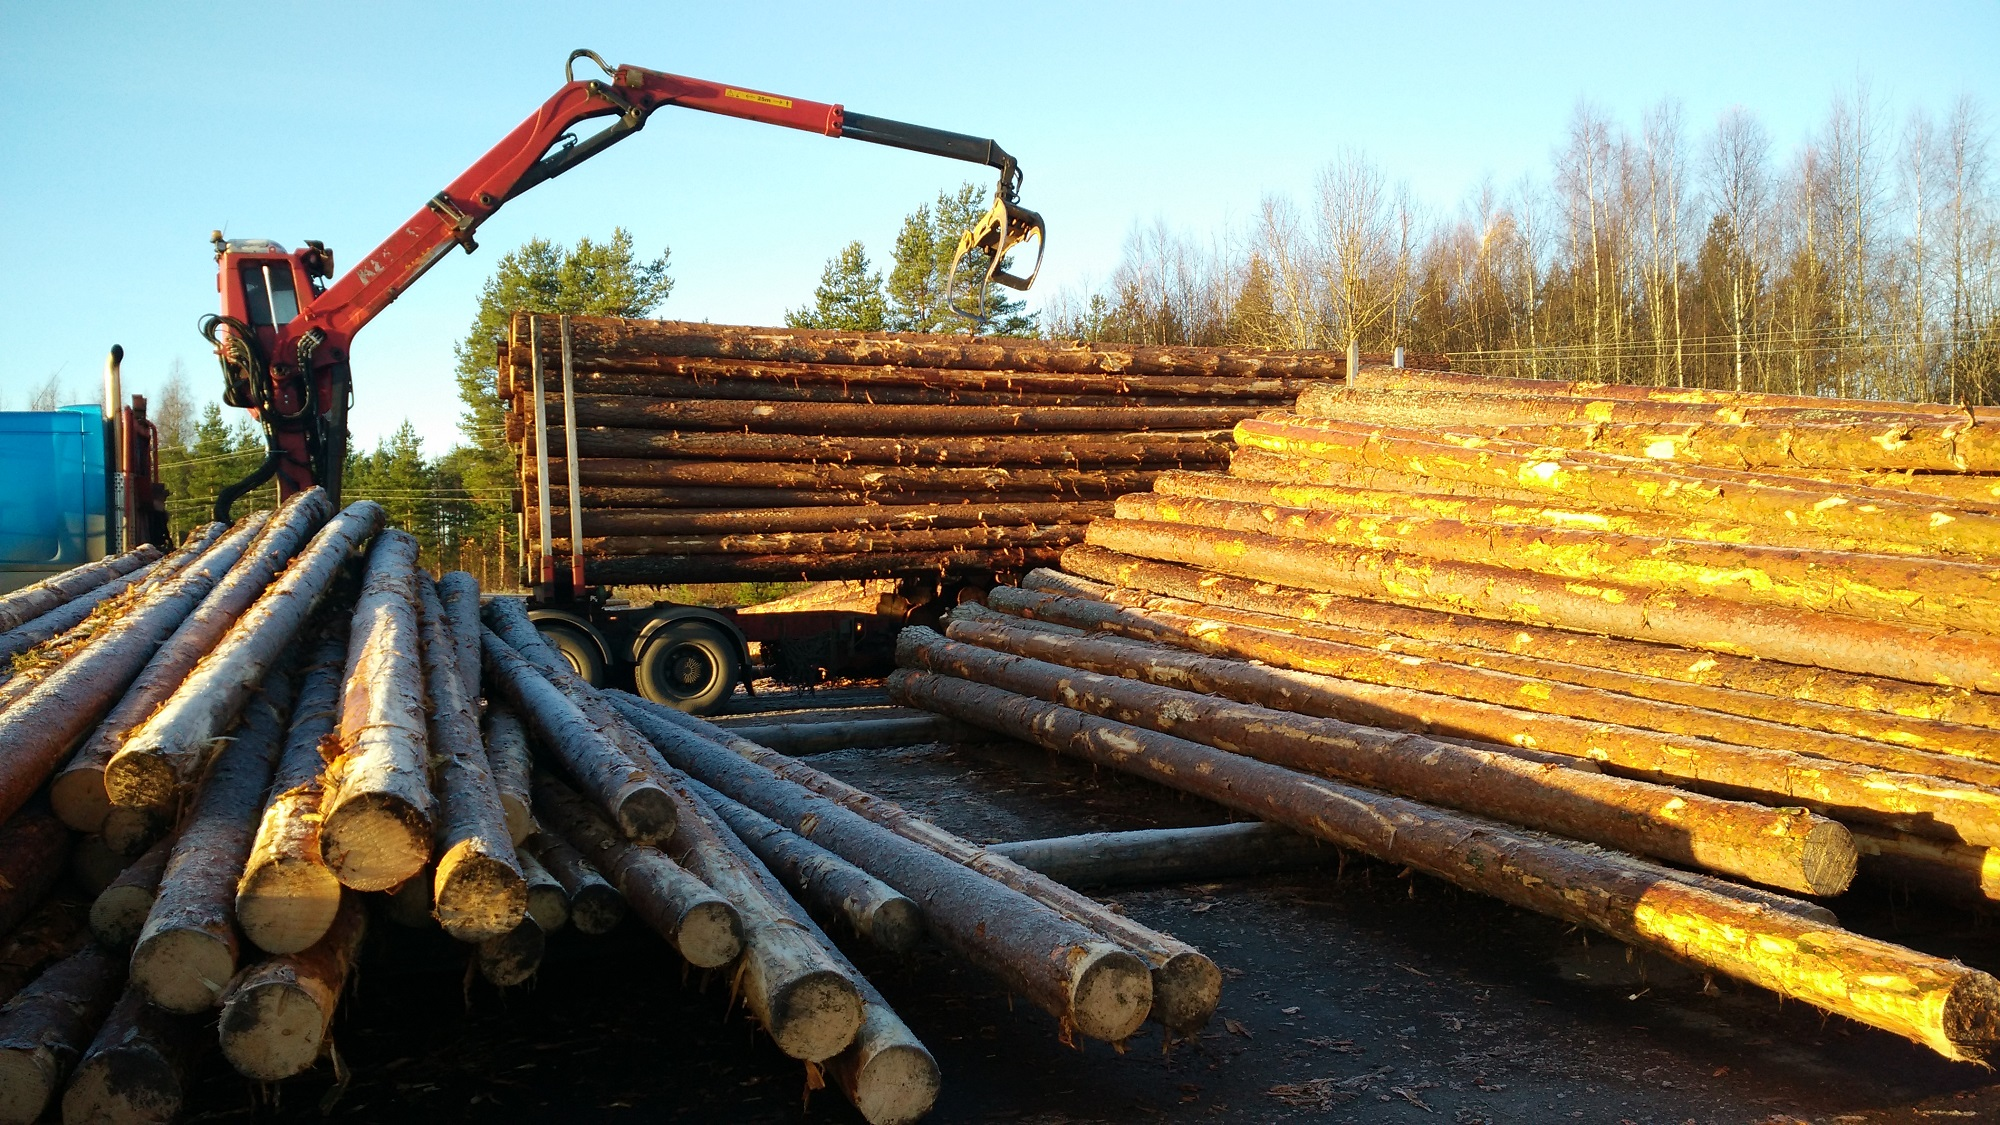 Wooden poles with creosote treatment